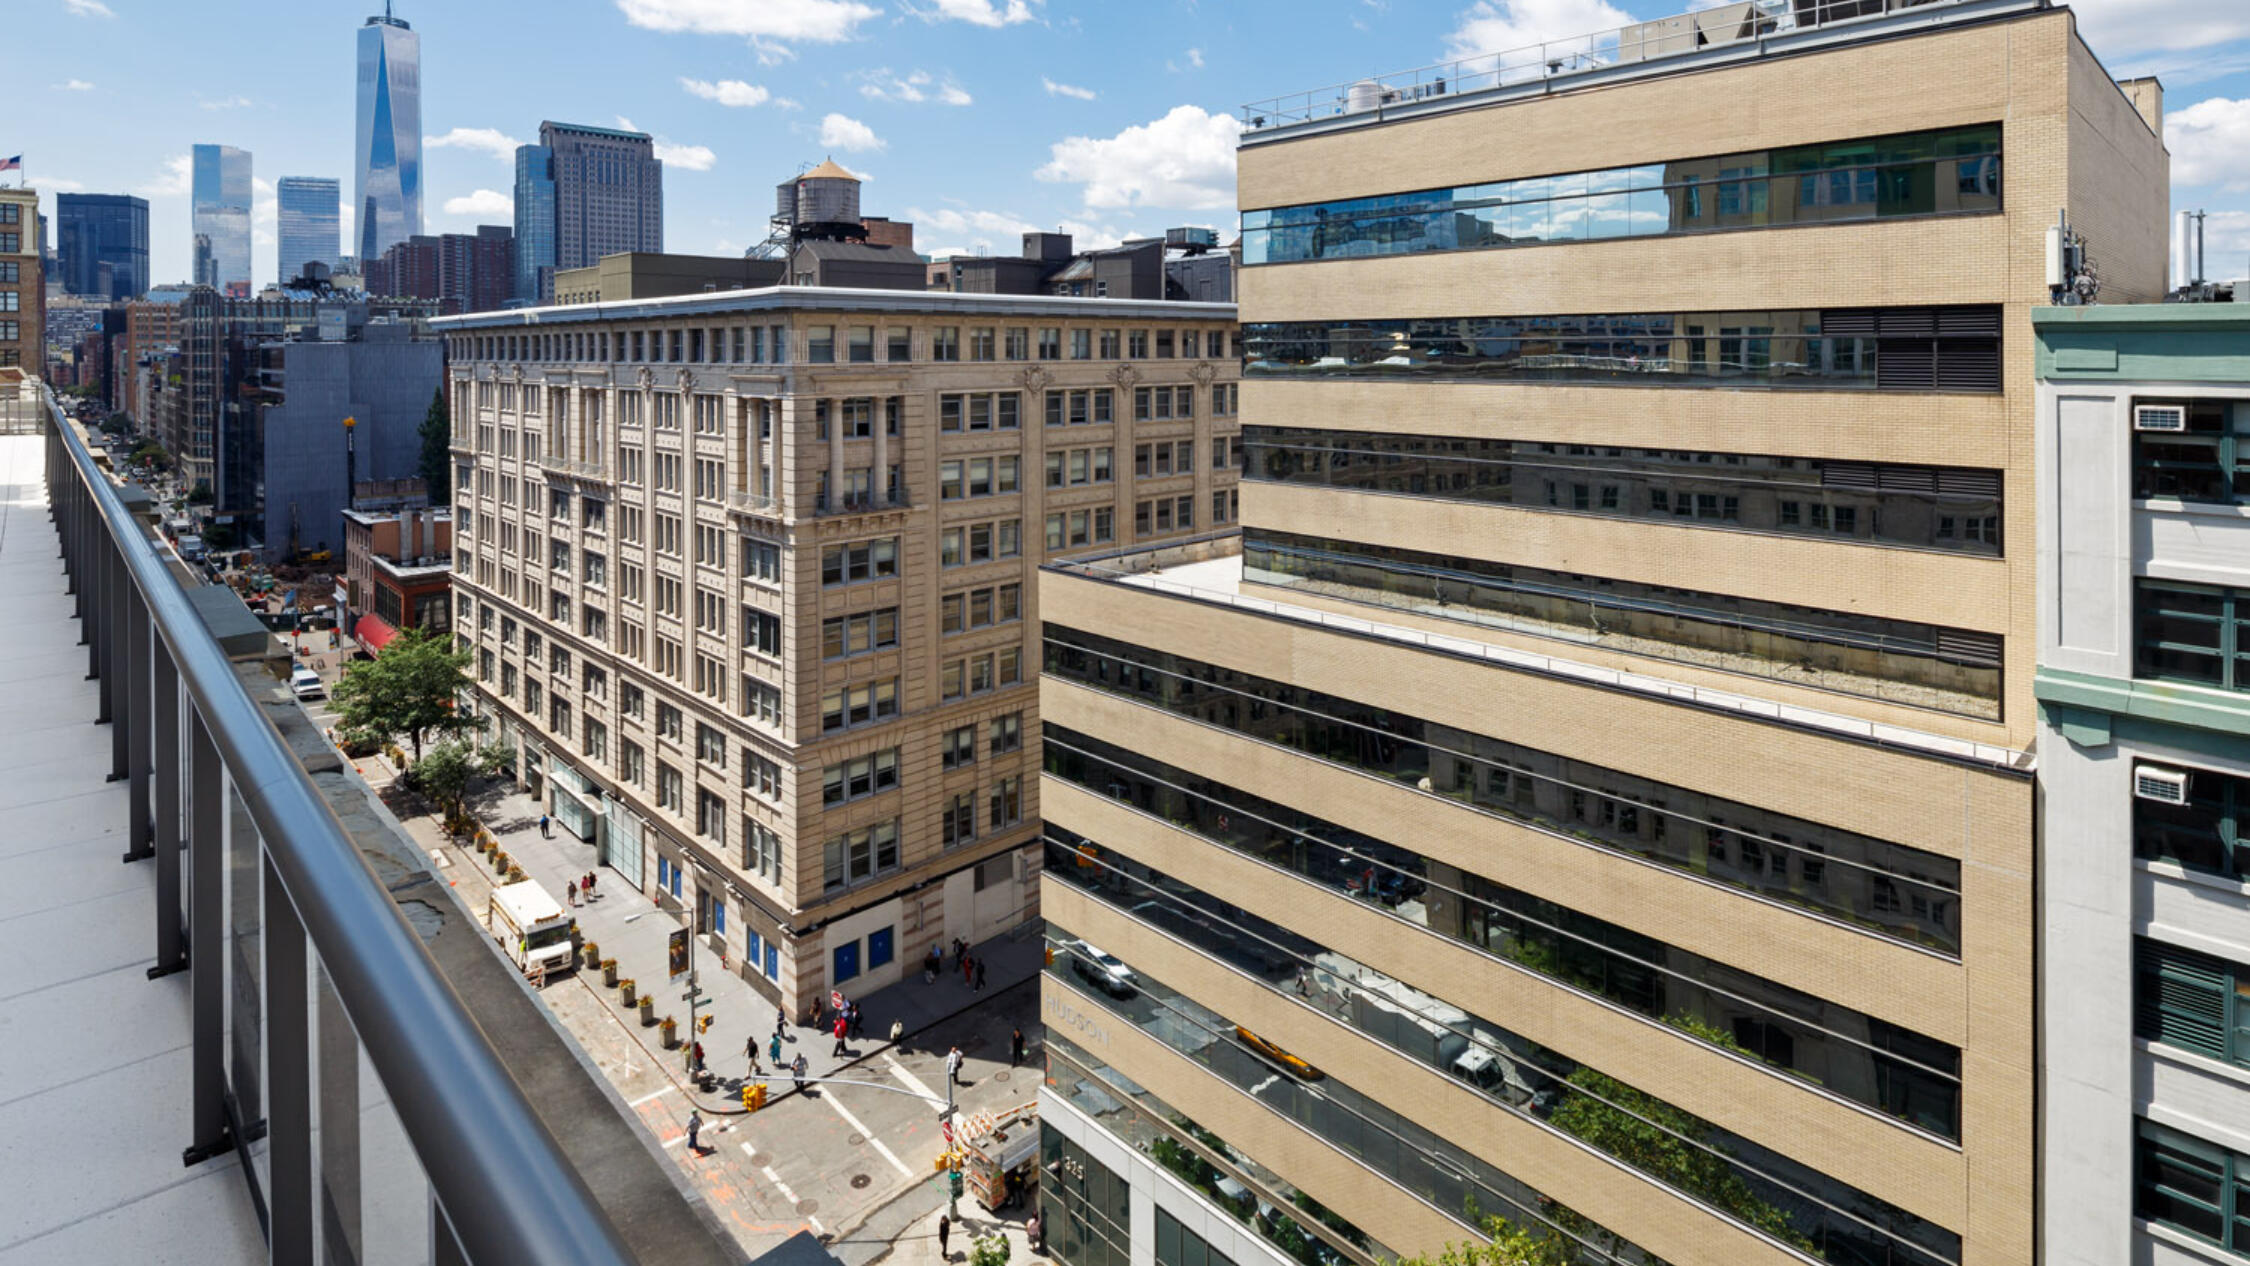 325 Hudson viewed from roof of building across the street